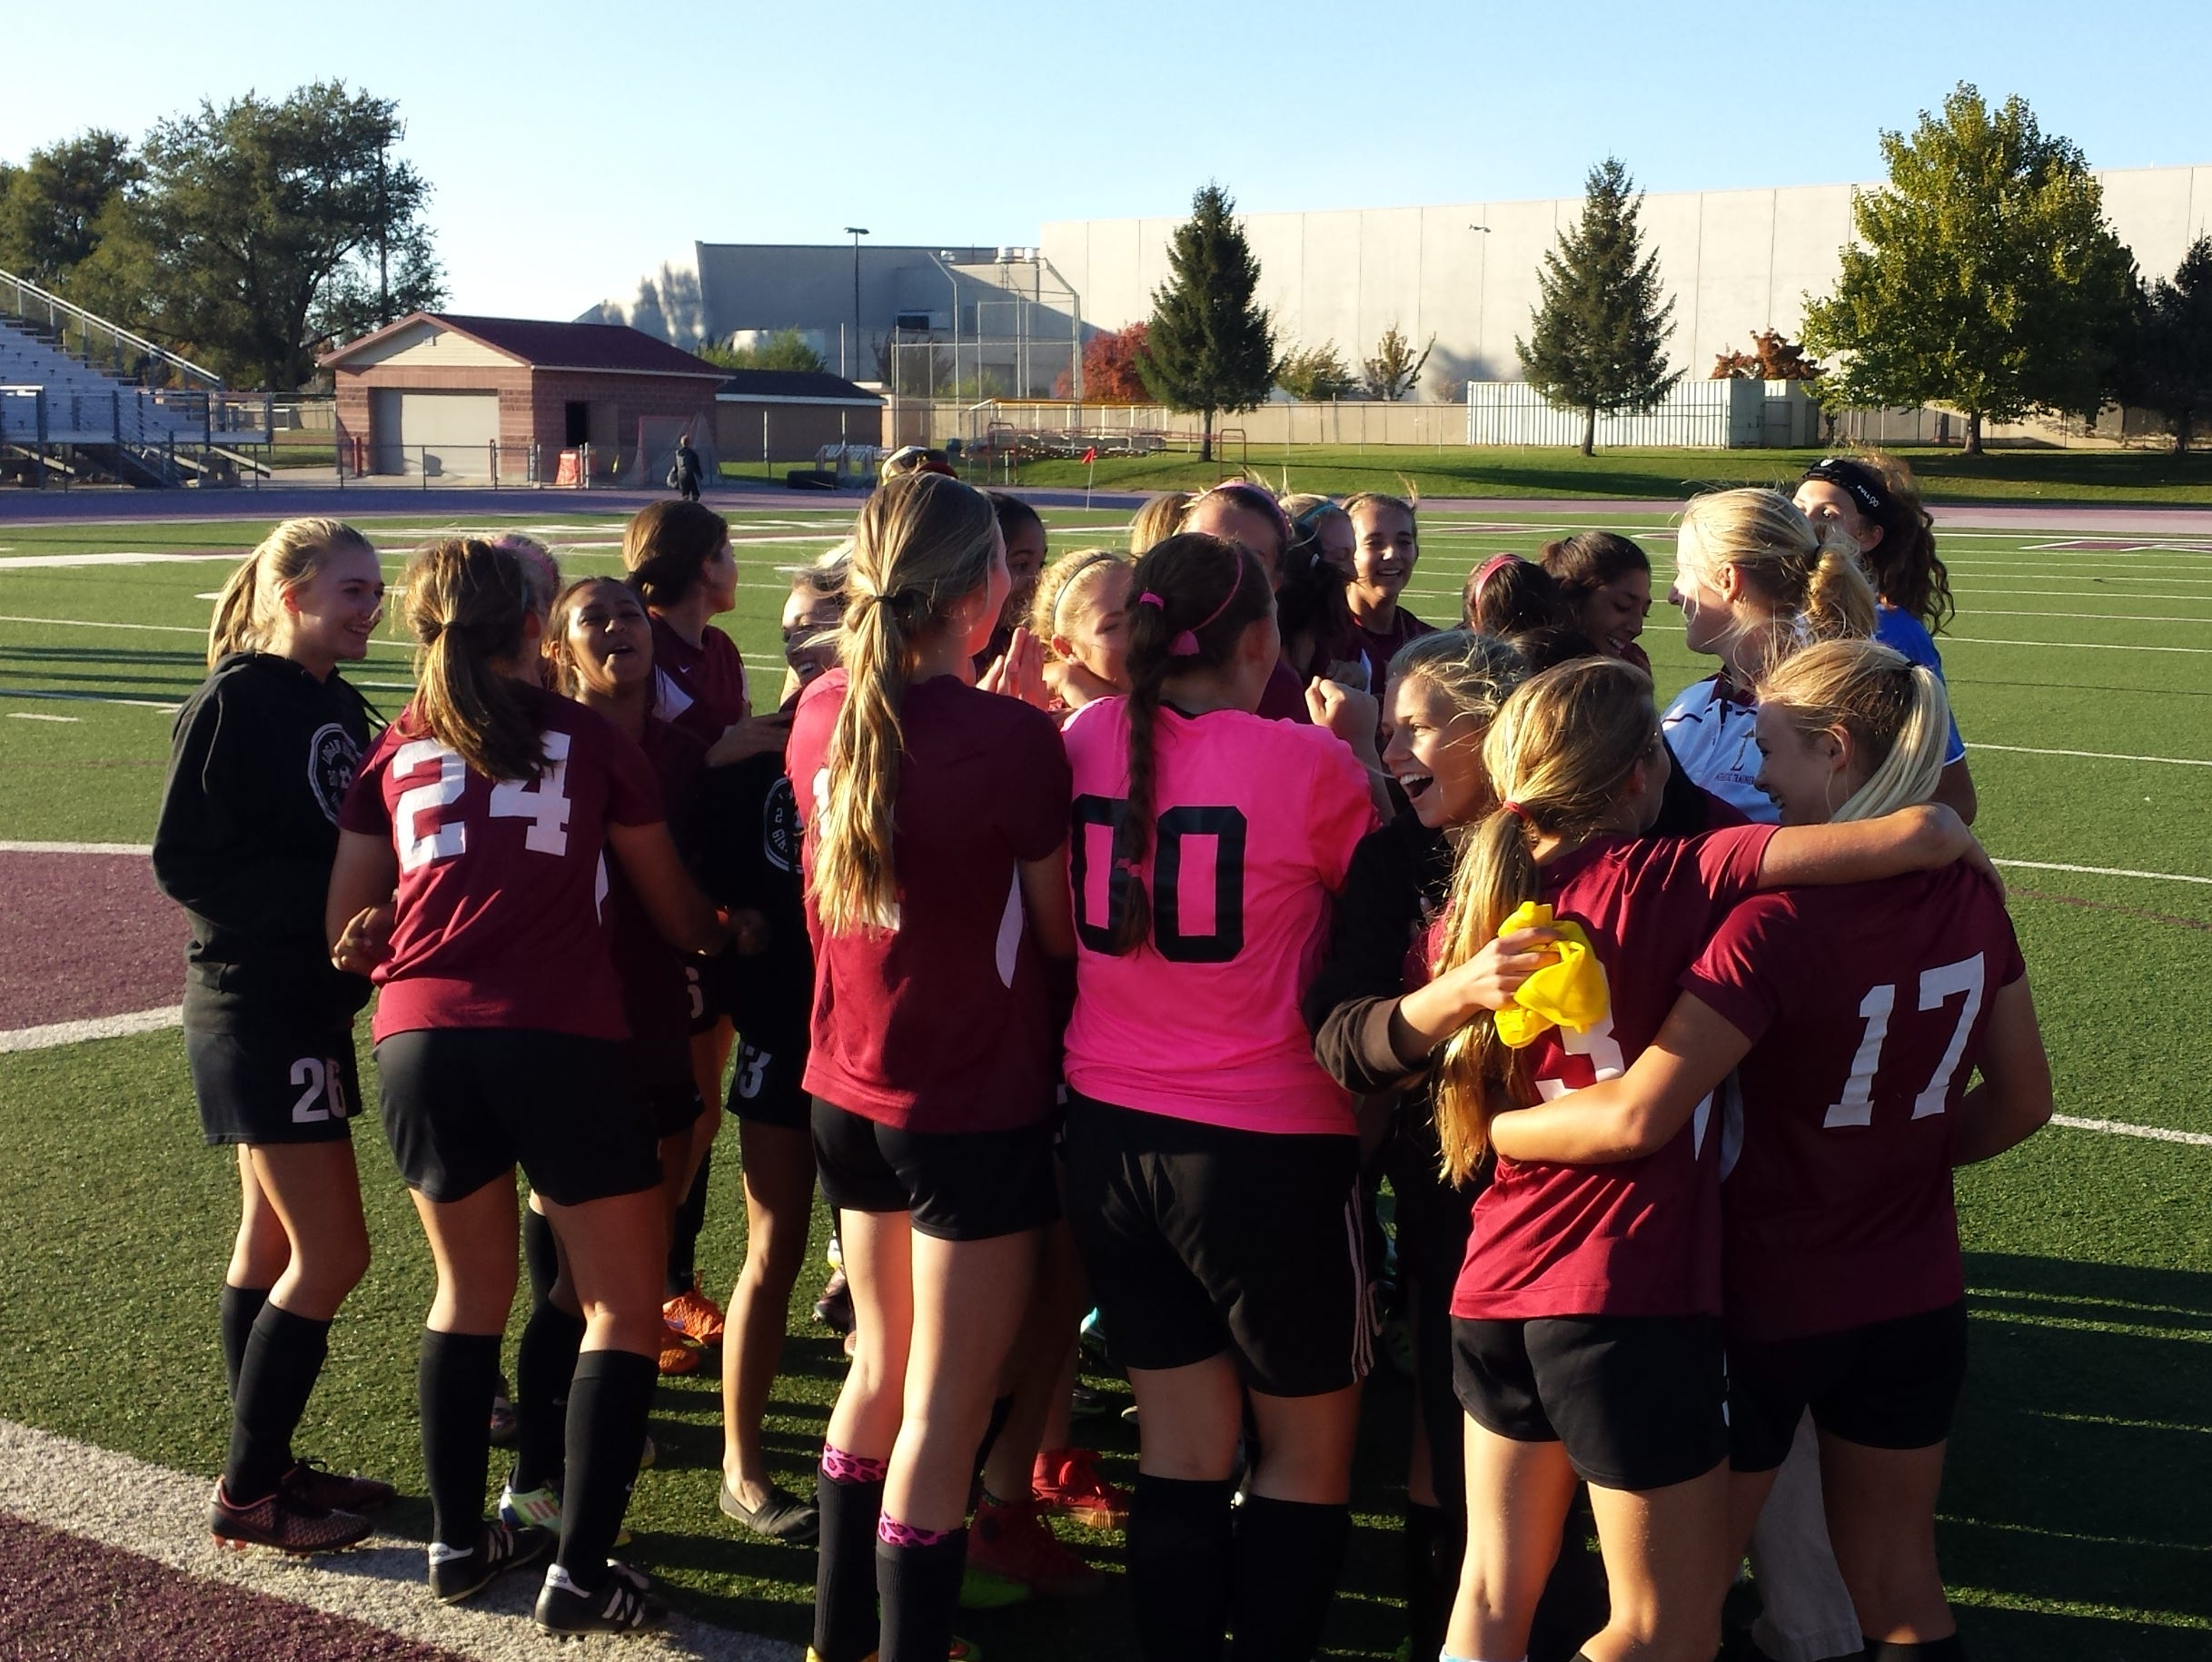 Logan defeated Desert Hills 4-1 at Jordan High School on Friday to advance to the 3A title game against Cedar at Rio Tinto Stadium on Saturday.